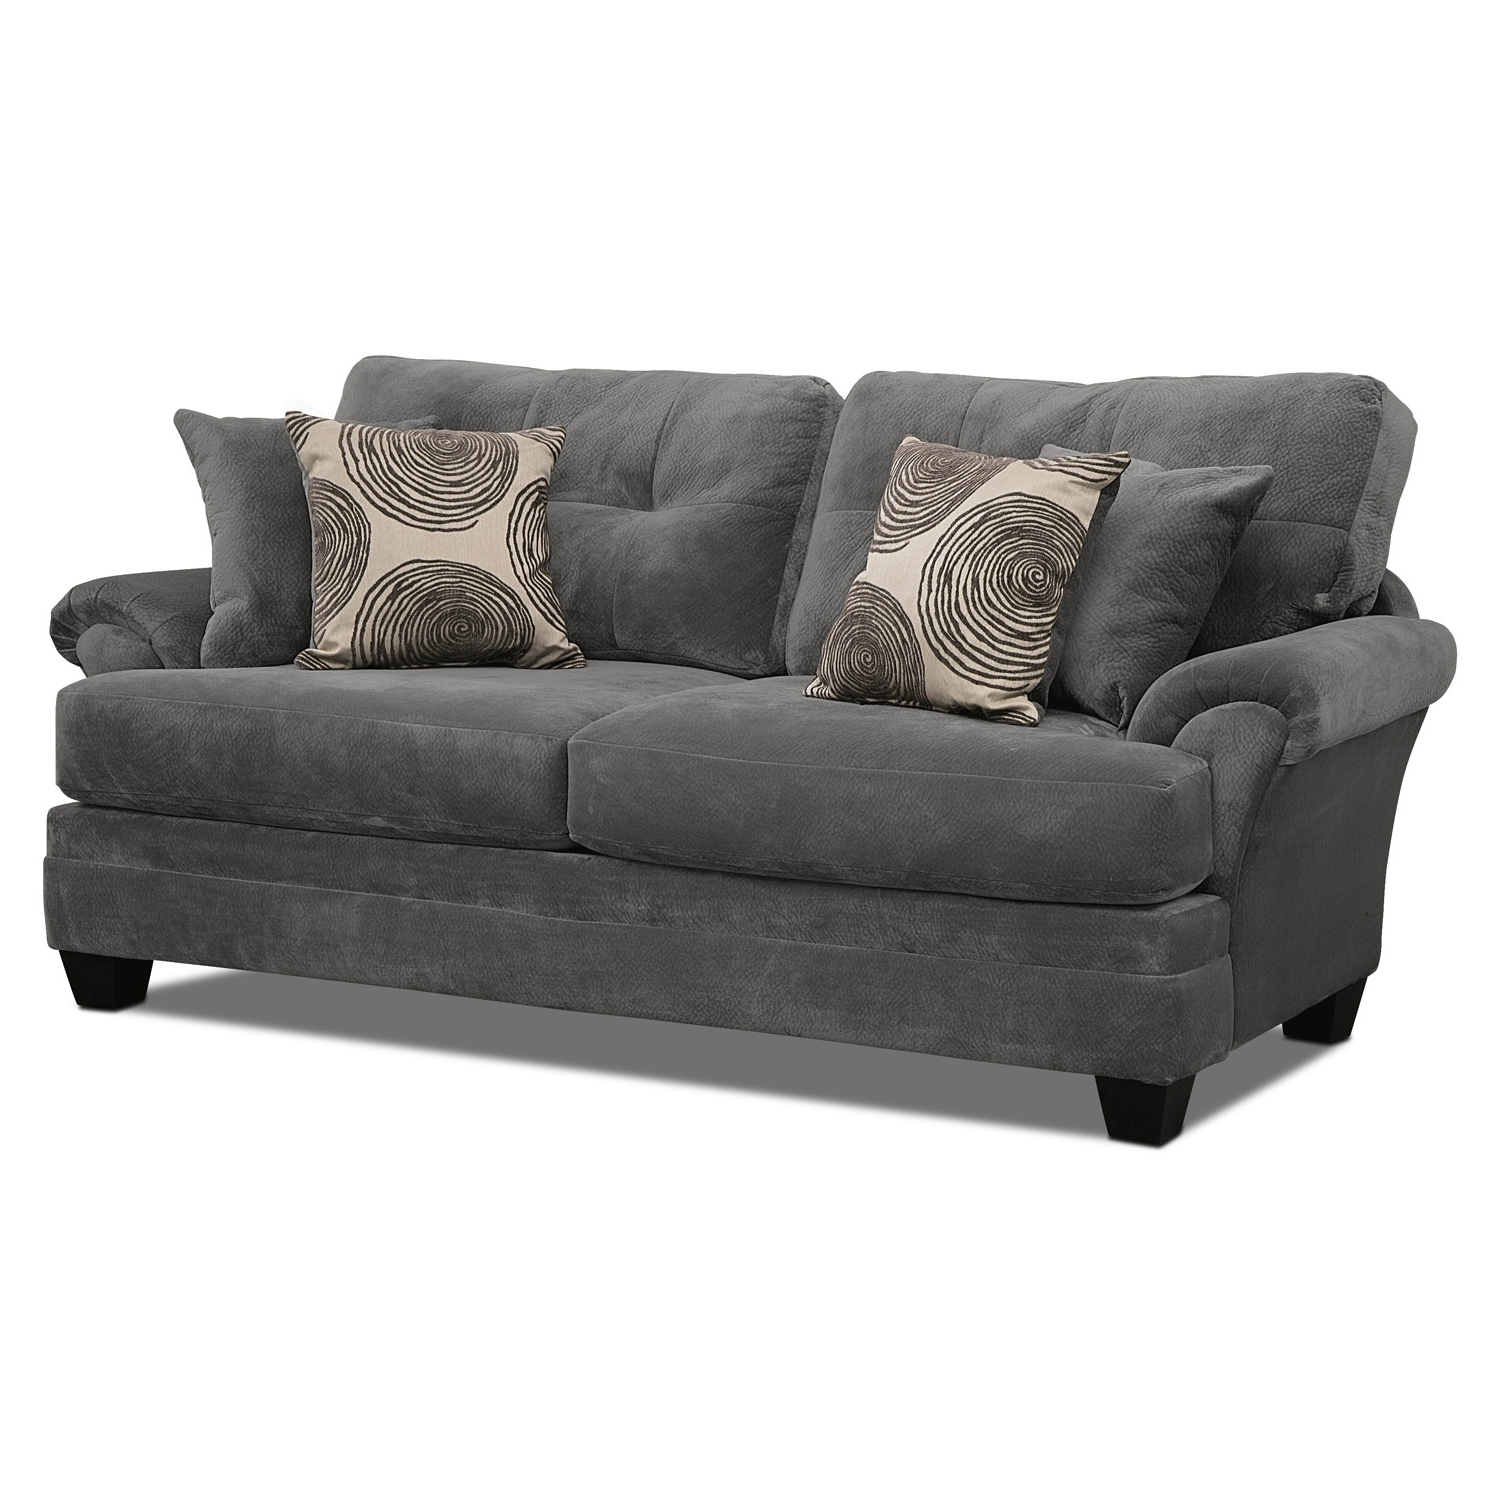 Latest Furniture : Couchtuner X 8 Week Couch To 5K Training Plan Sofa Intended For Greenville Nc Sectional Sofas (View 15 of 15)